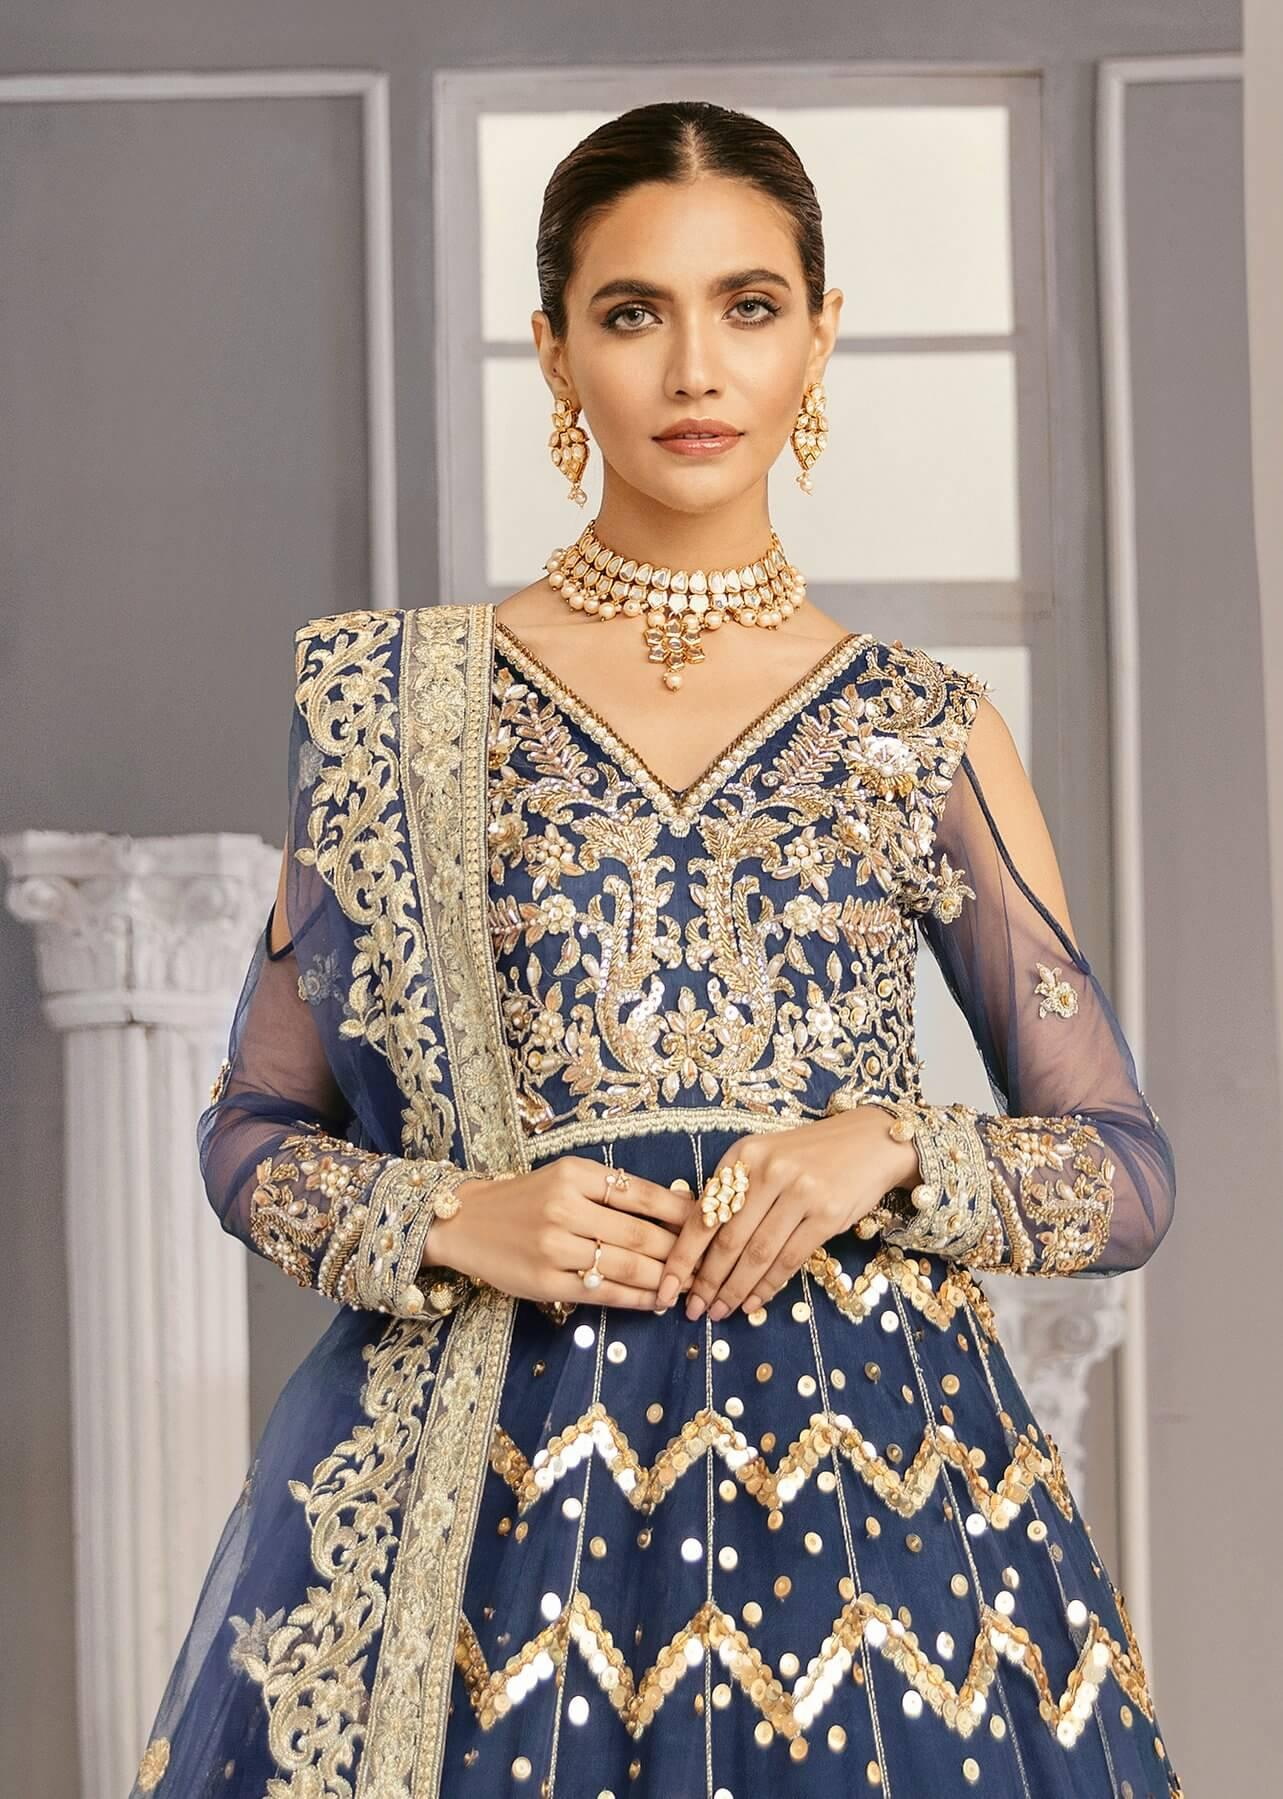 Akbar Aslam Libas e Khas Wedding Collection 3pc Suit AAWC-1329 PERIWINKLE